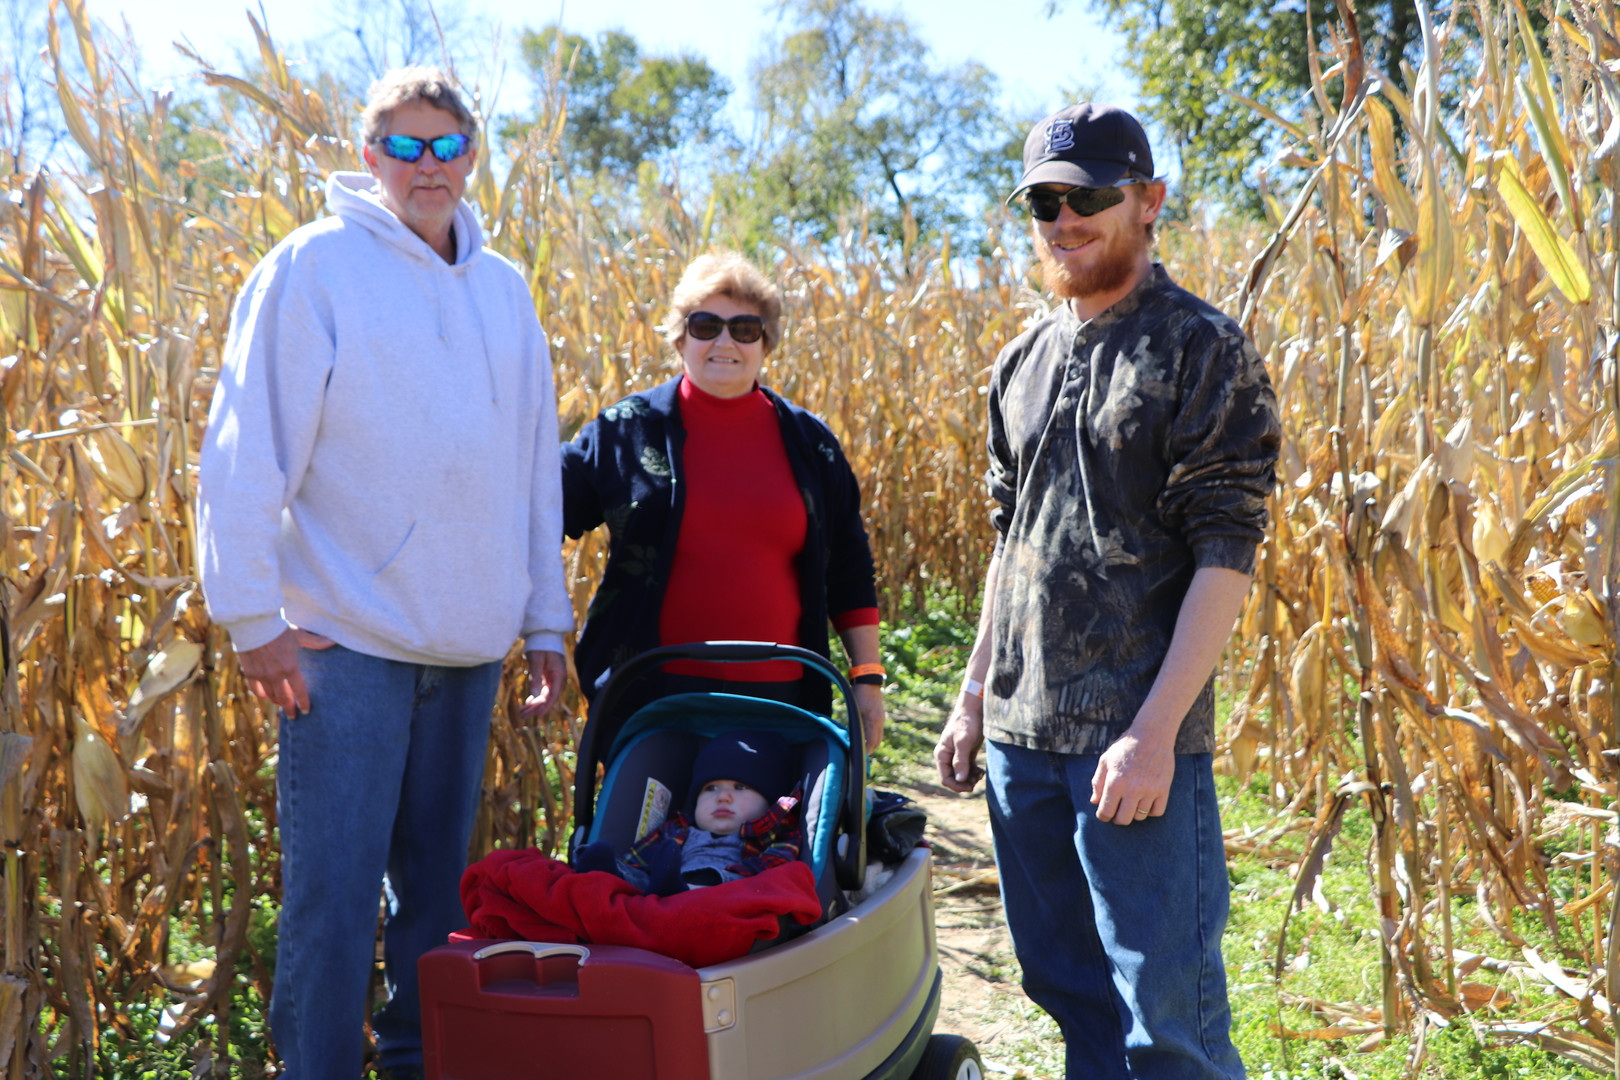 Family enjoying Corn Maze at Brookdale Farms